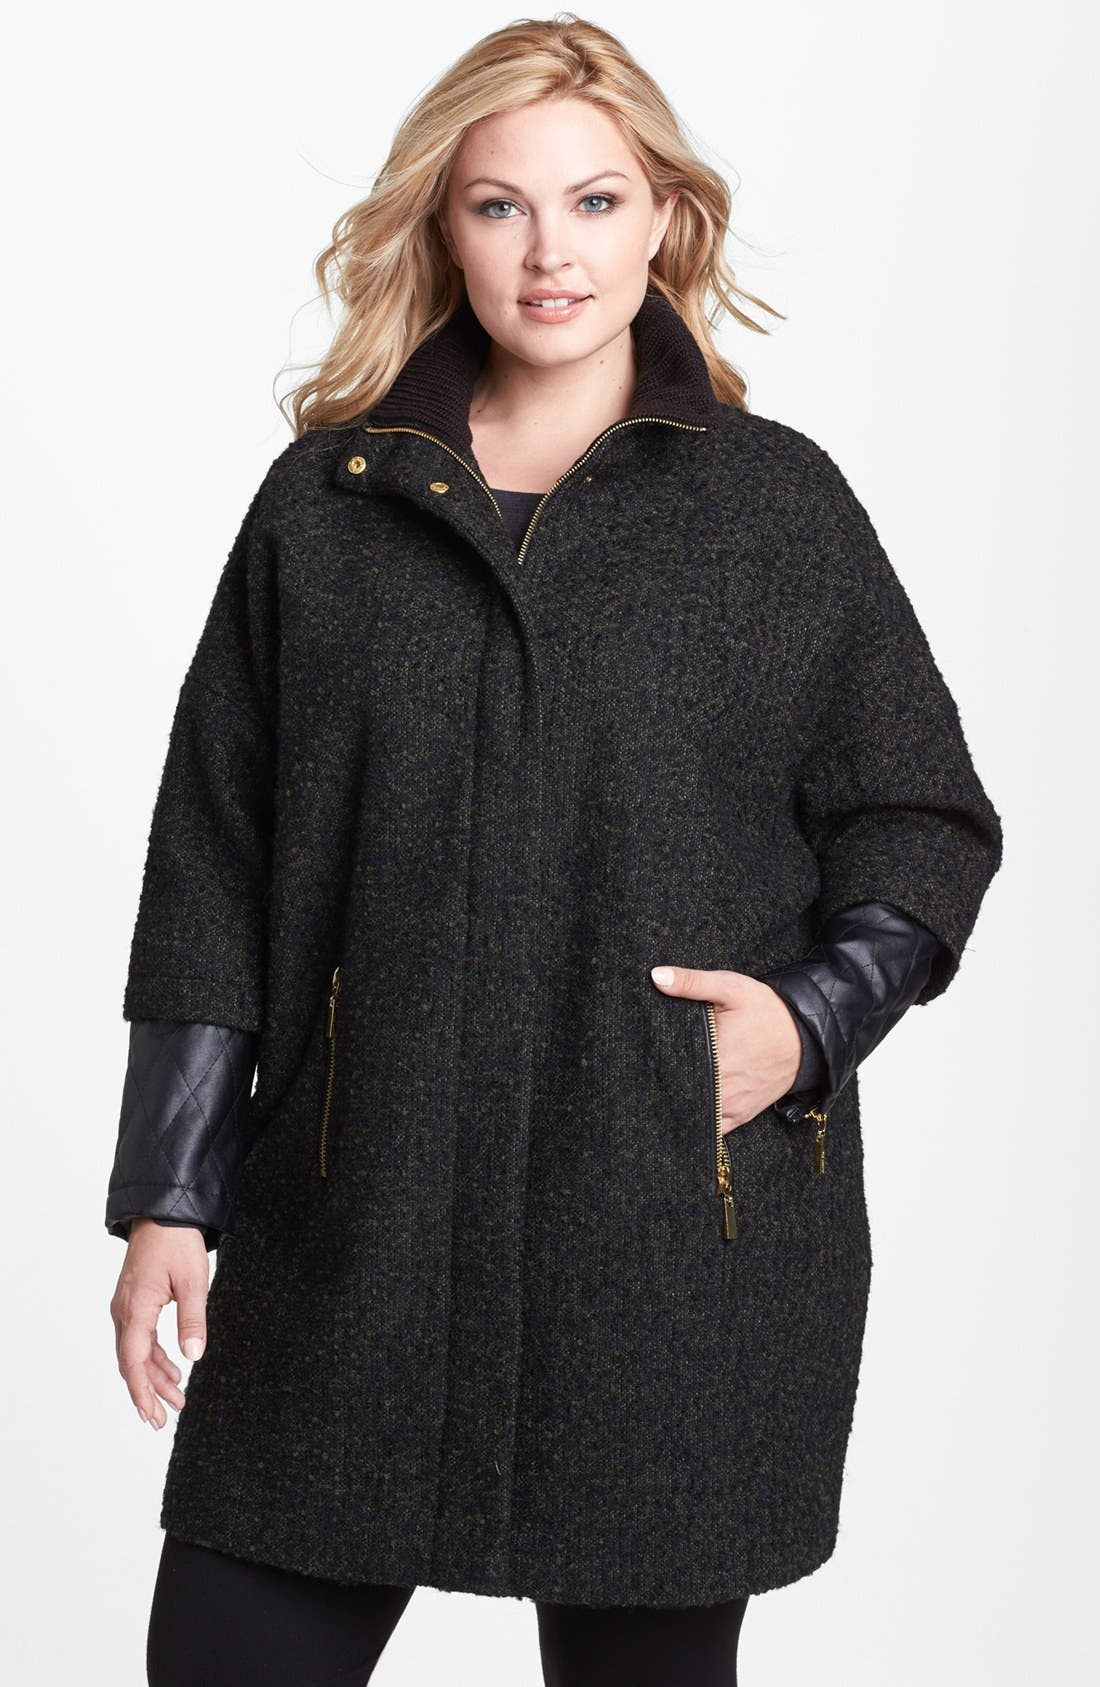 Alternate Image 1 Selected - Vince Camuto Faux Leather Sleeve Bouclé Tweed Coat (Plus Size)